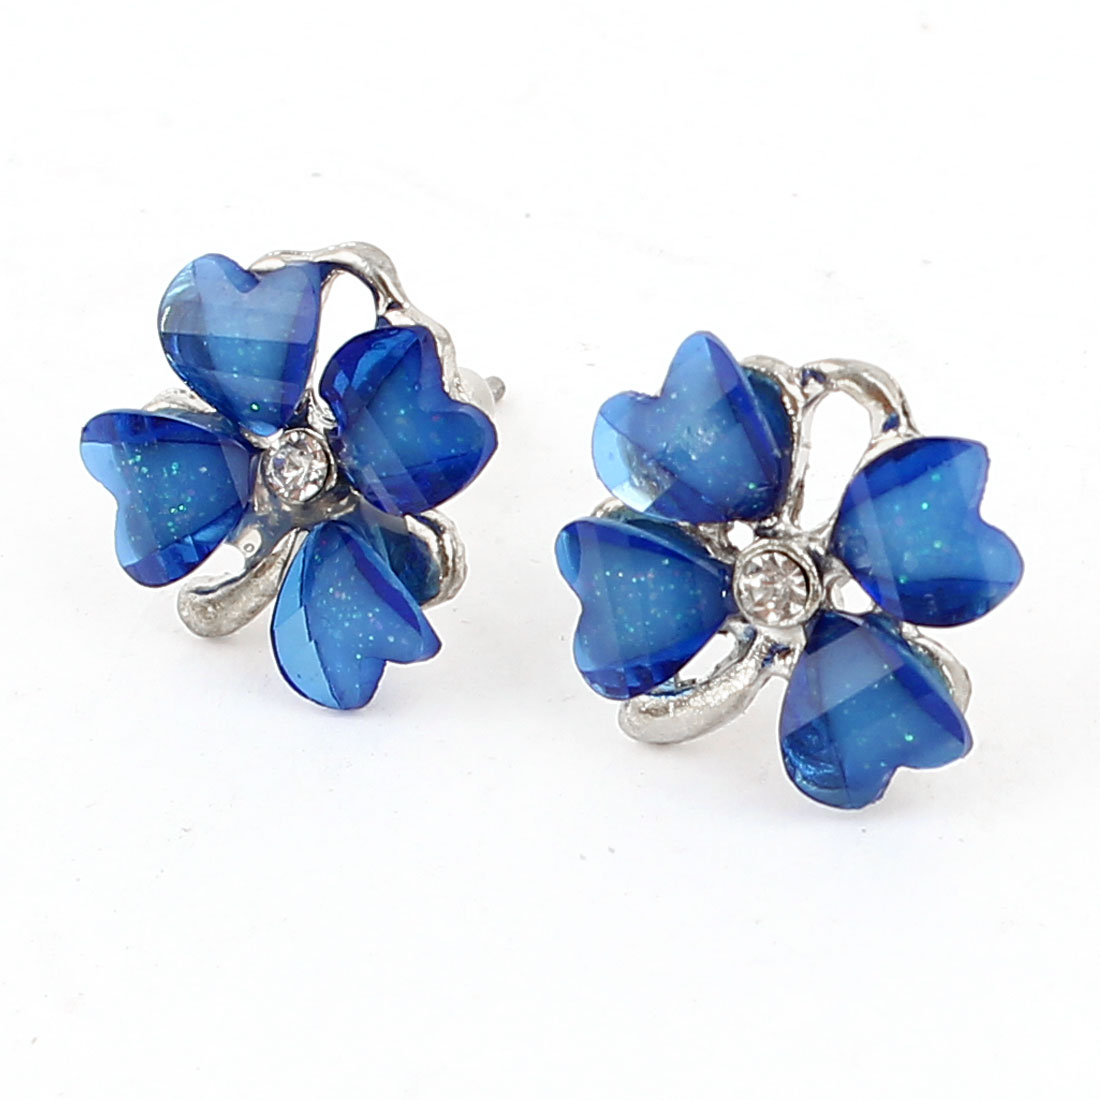 Blue Plastic Clover Flower Shape Rhinestone Accent Stud Earrings Pair for Women